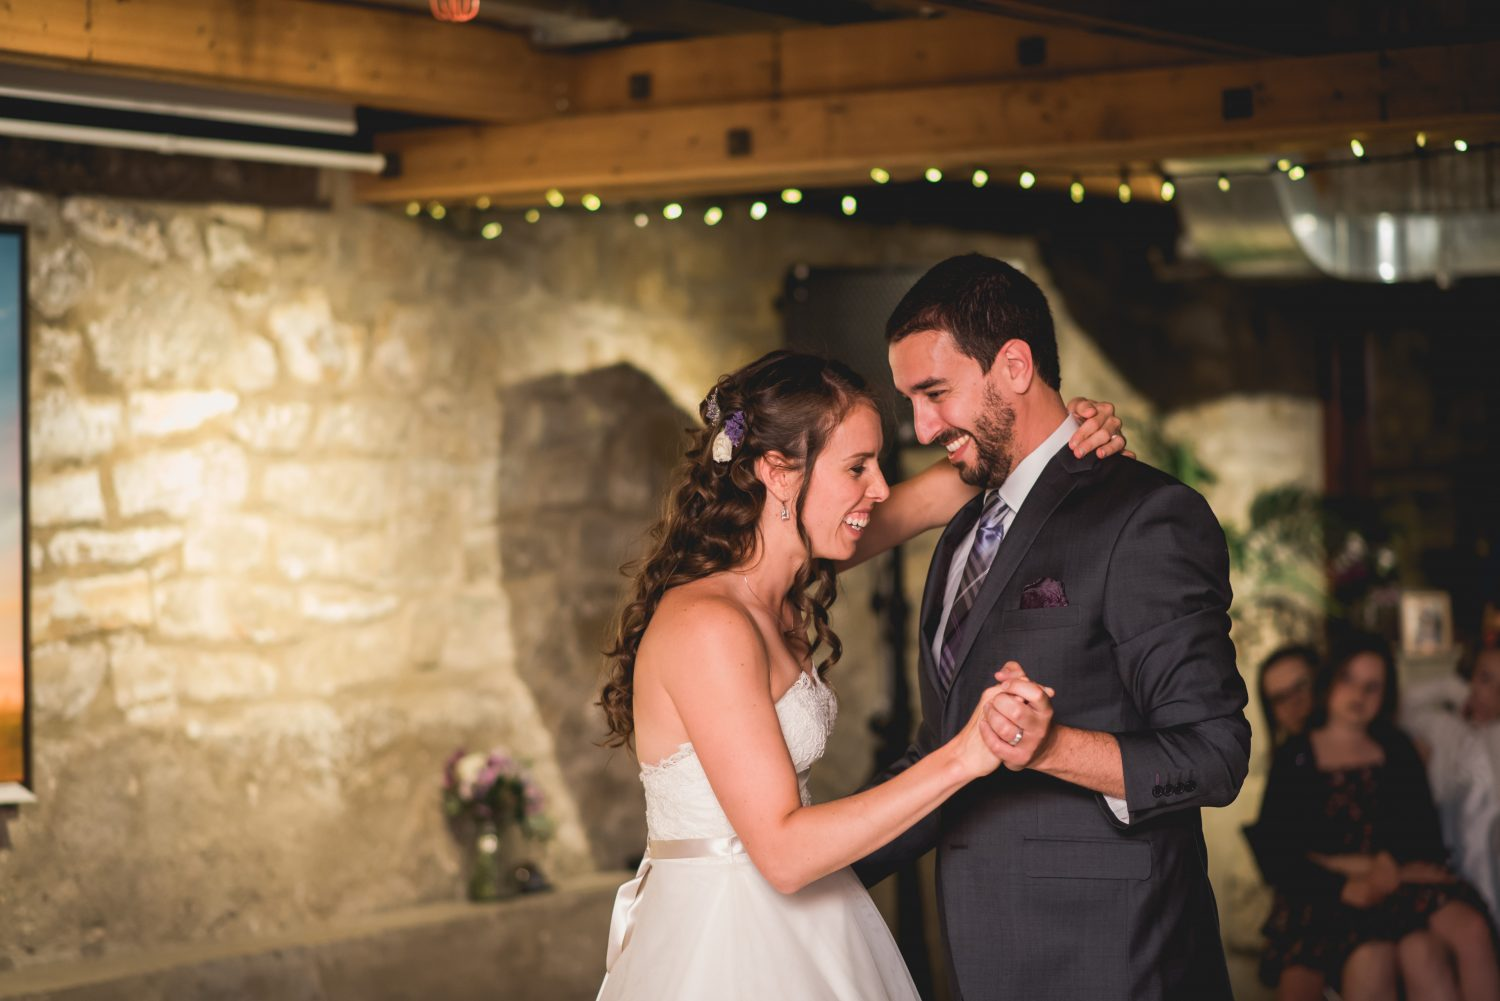 First dance held at Alton Mill wedding